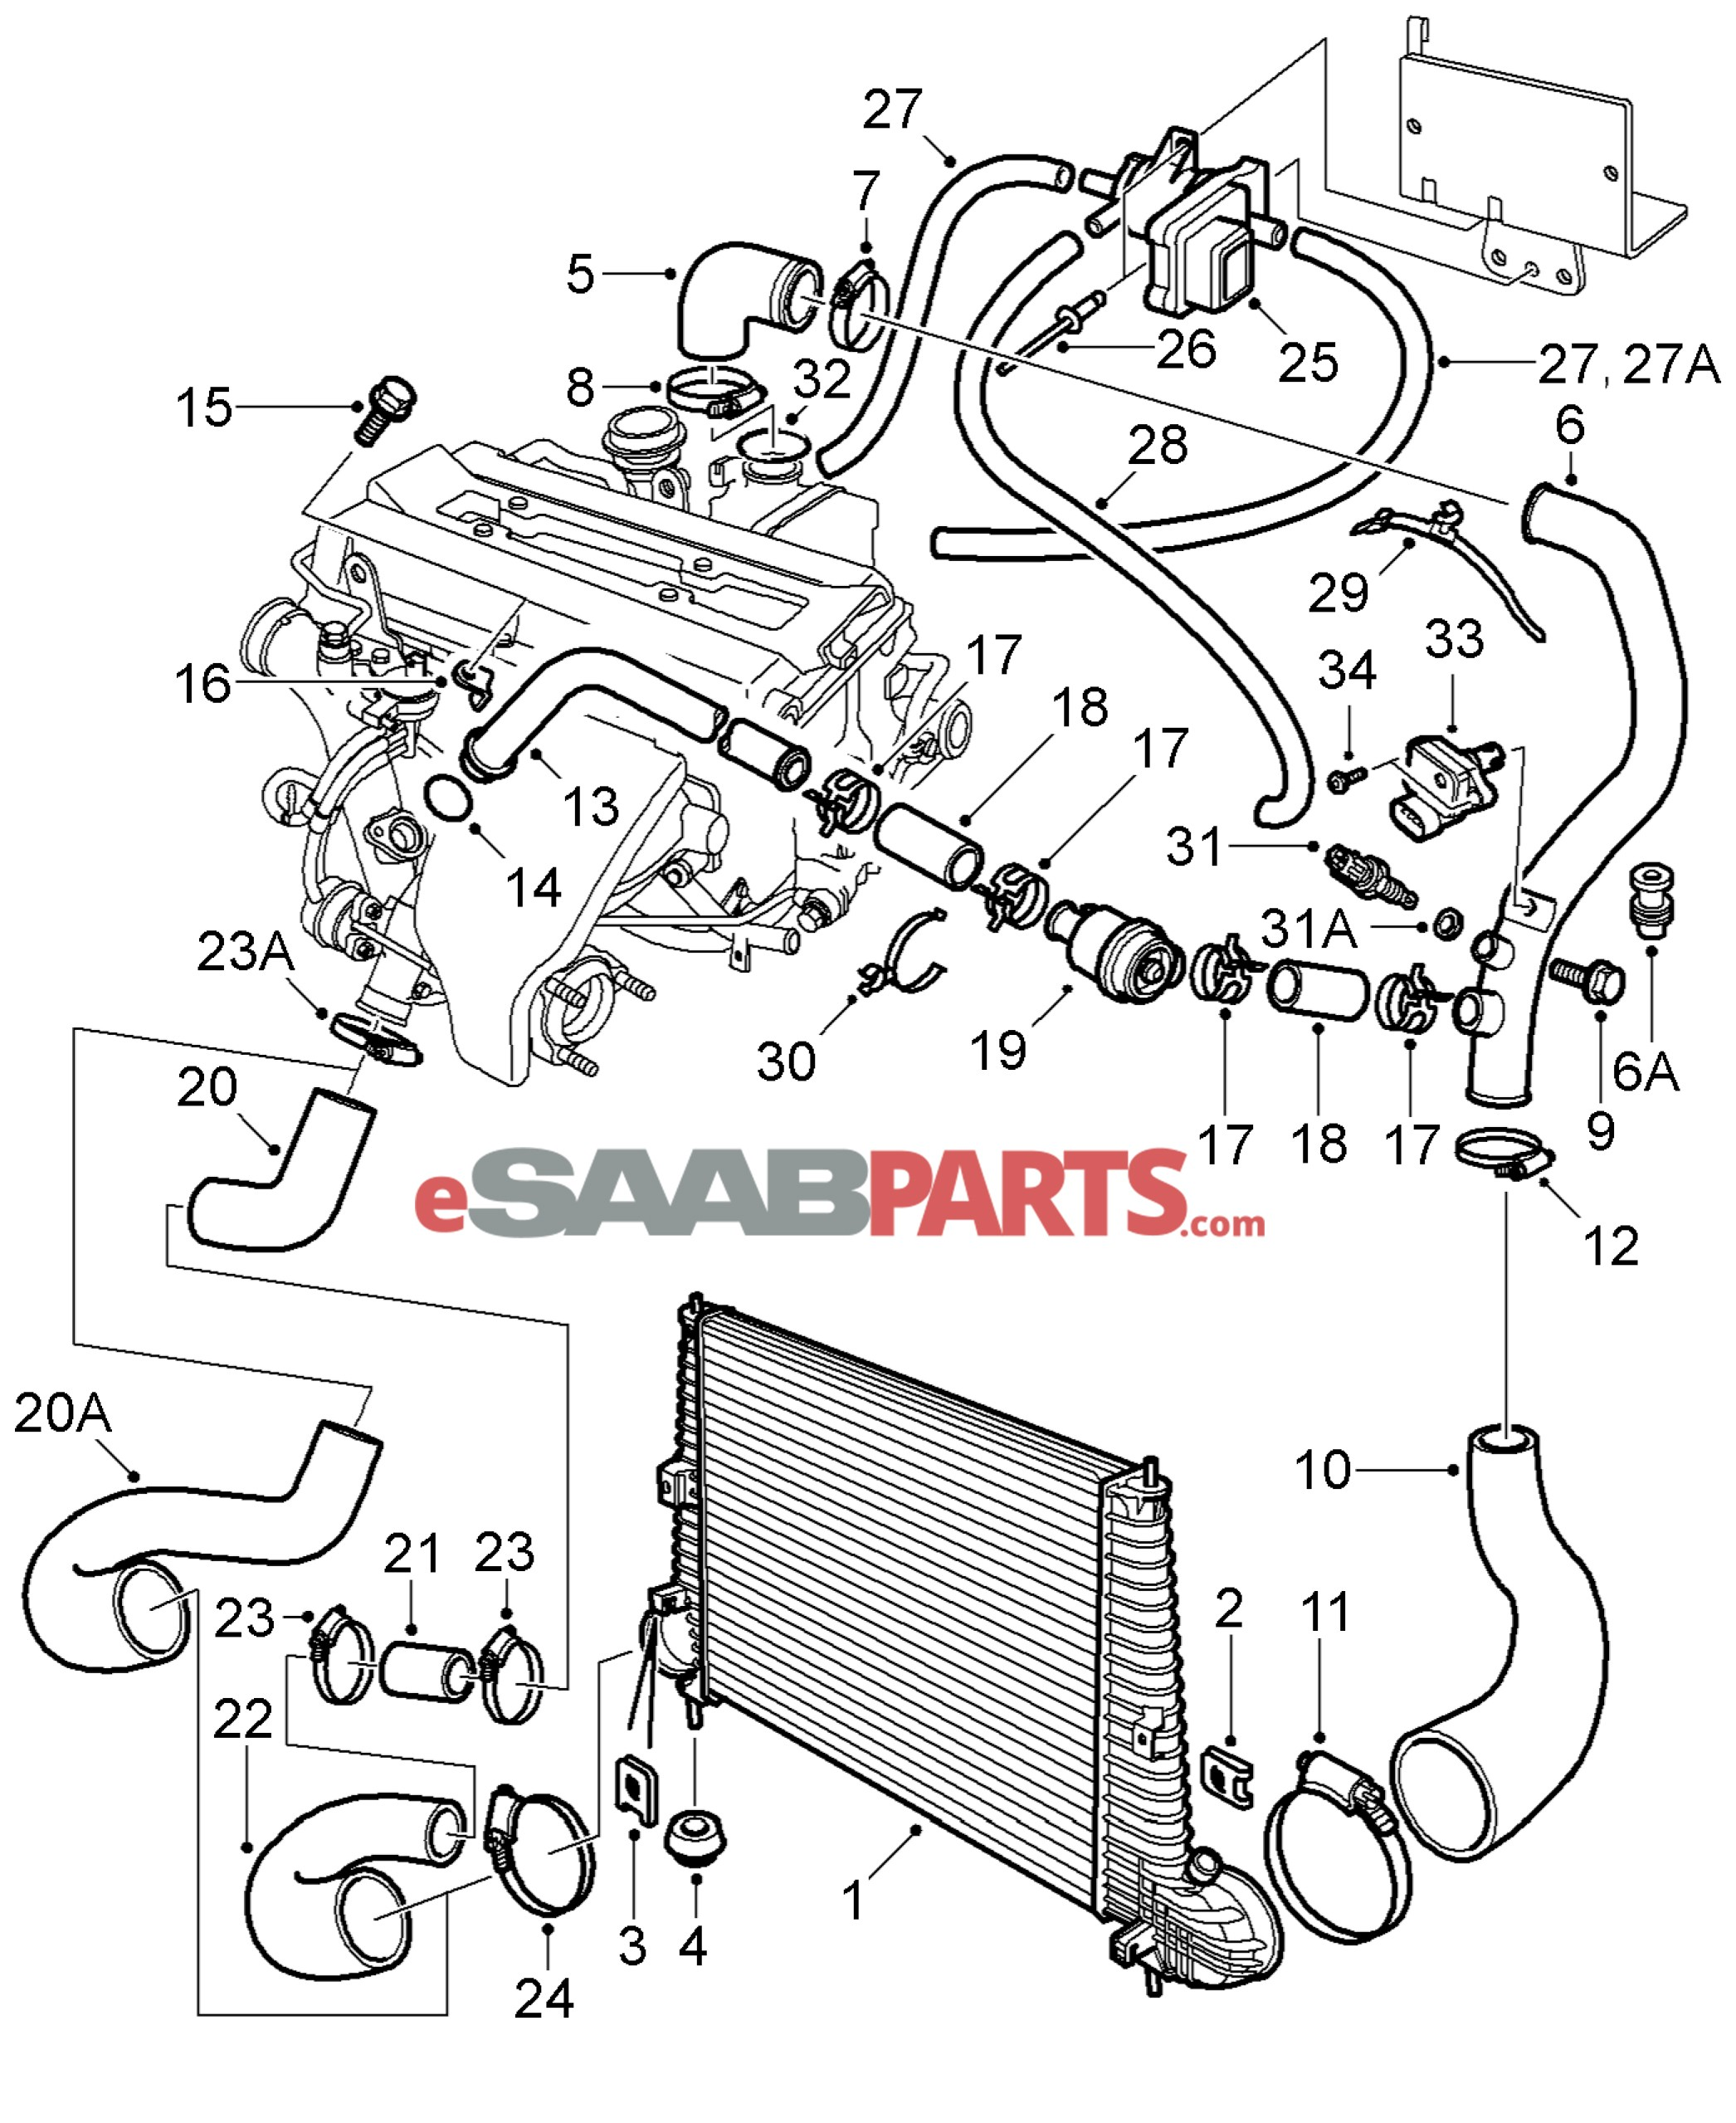 saab wiring diagram 2004 book saab auto wiring diagram